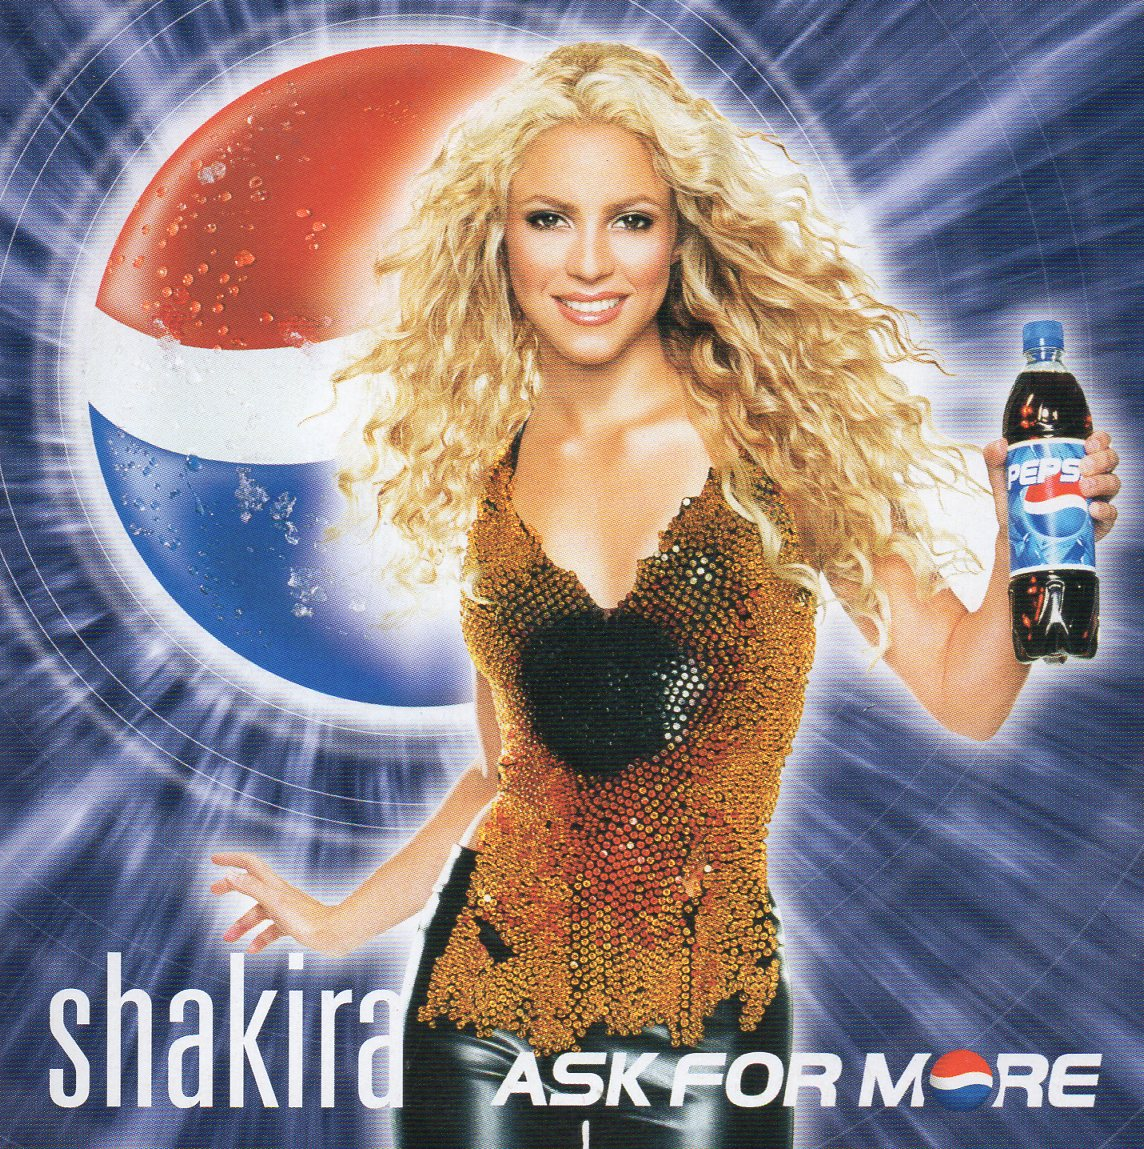 SHAKIRA - Ask for more 2-TRACK CARD SLEEVE - PEPSI Limited Edition - - CD single